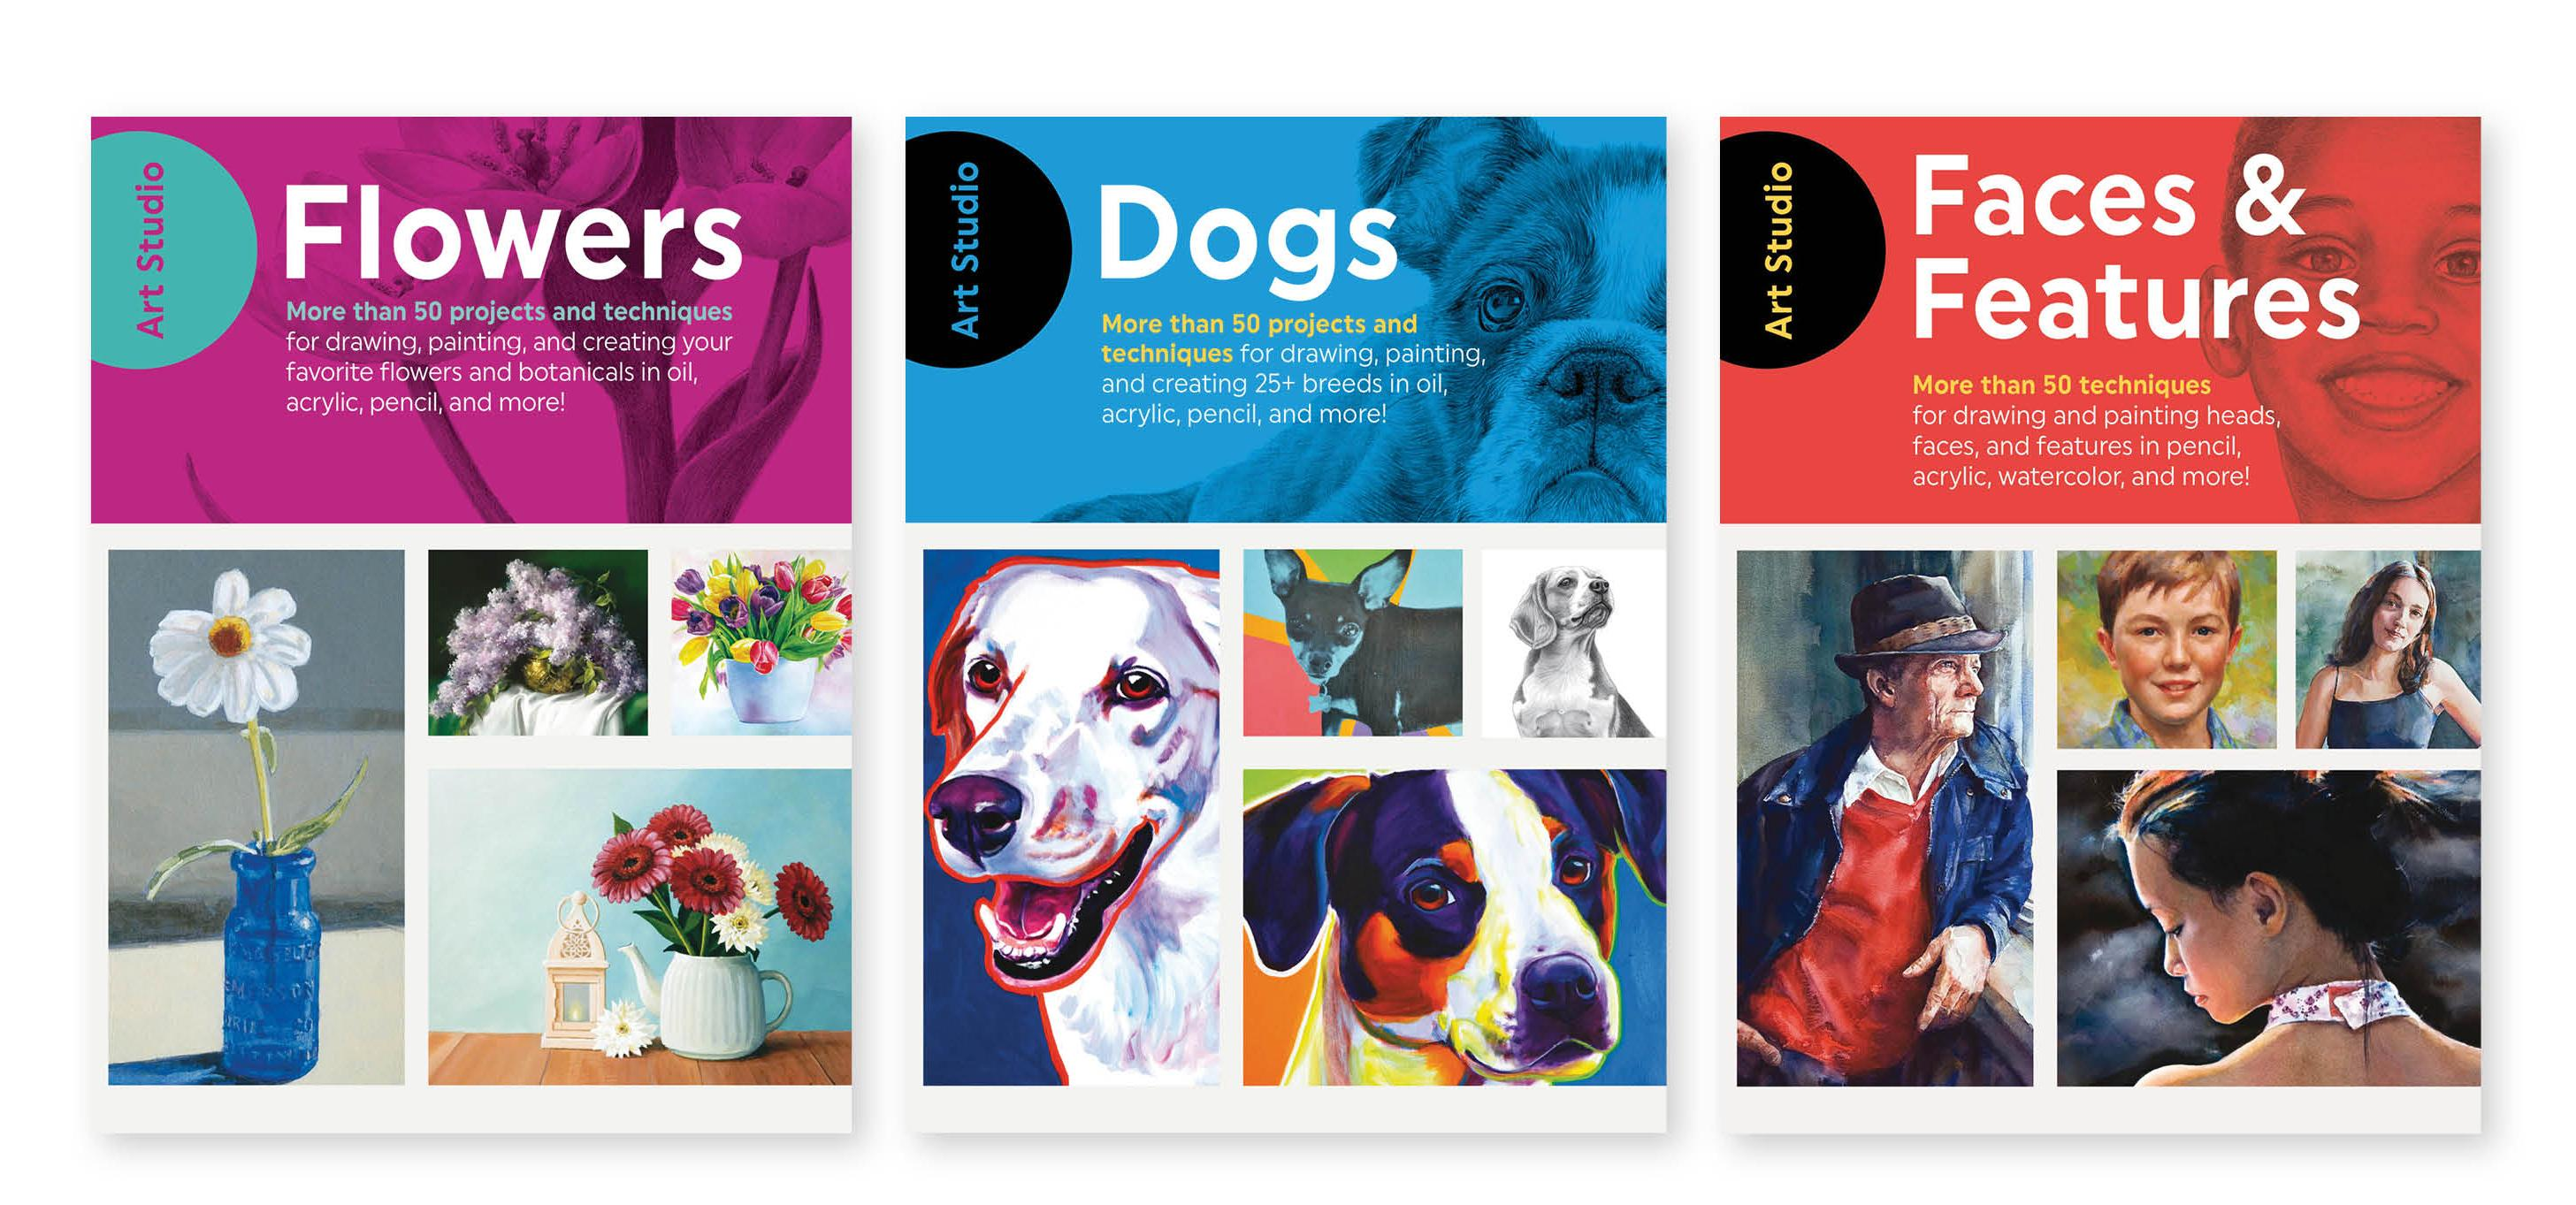 Art Studio Dogs More Than 50 Projects And Techniques For